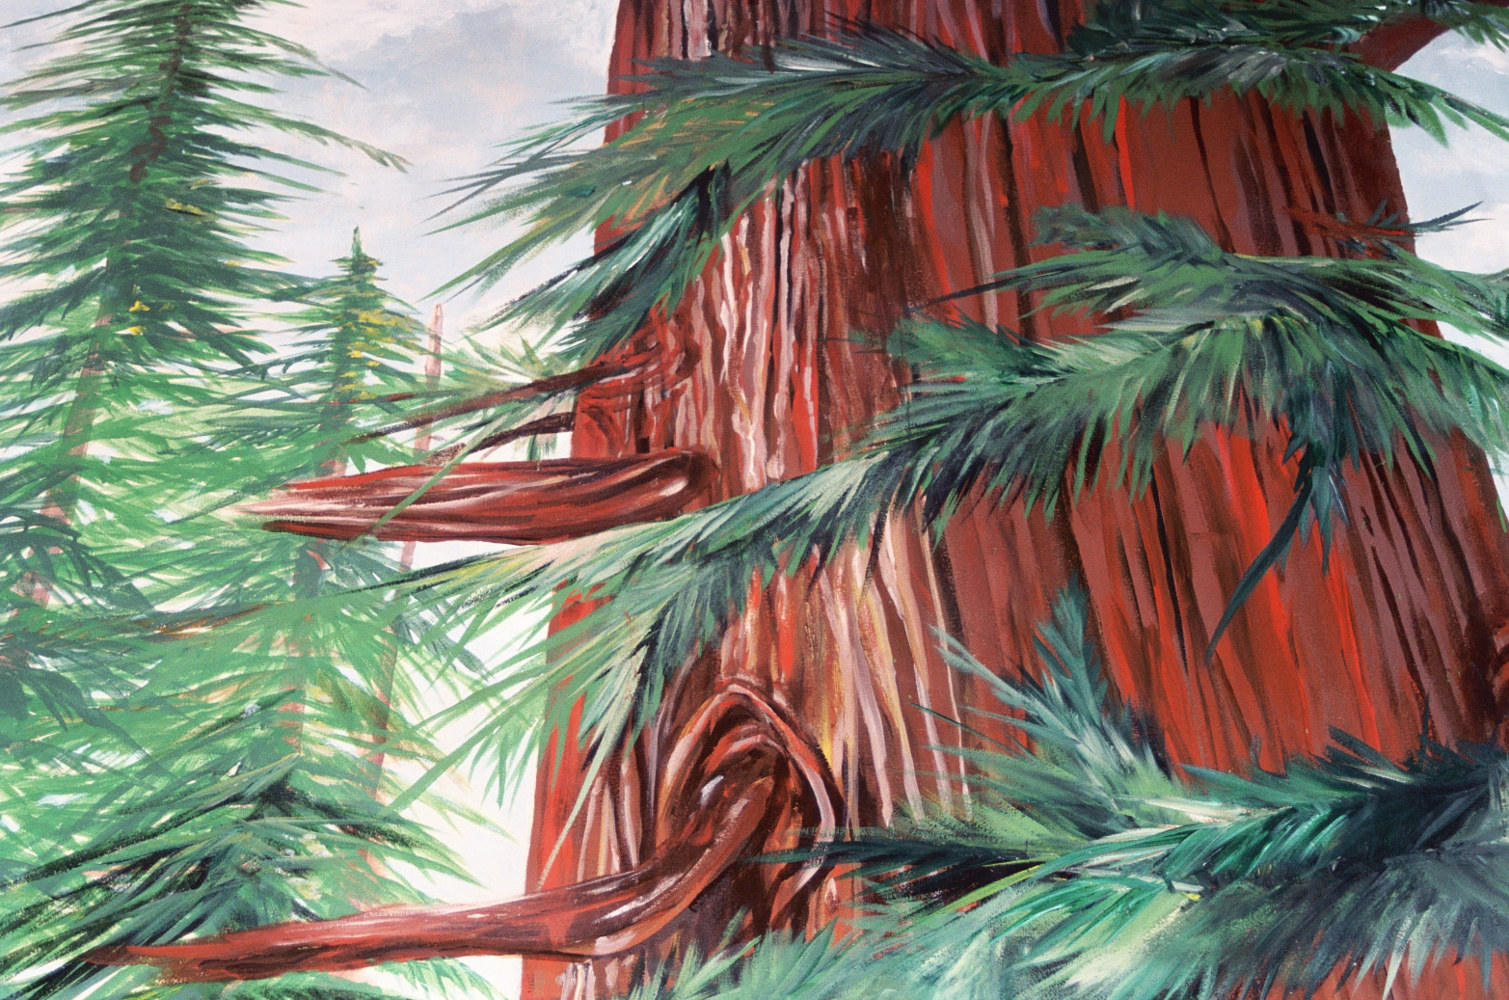 RedwoodCloseup1 by Terry Joseph